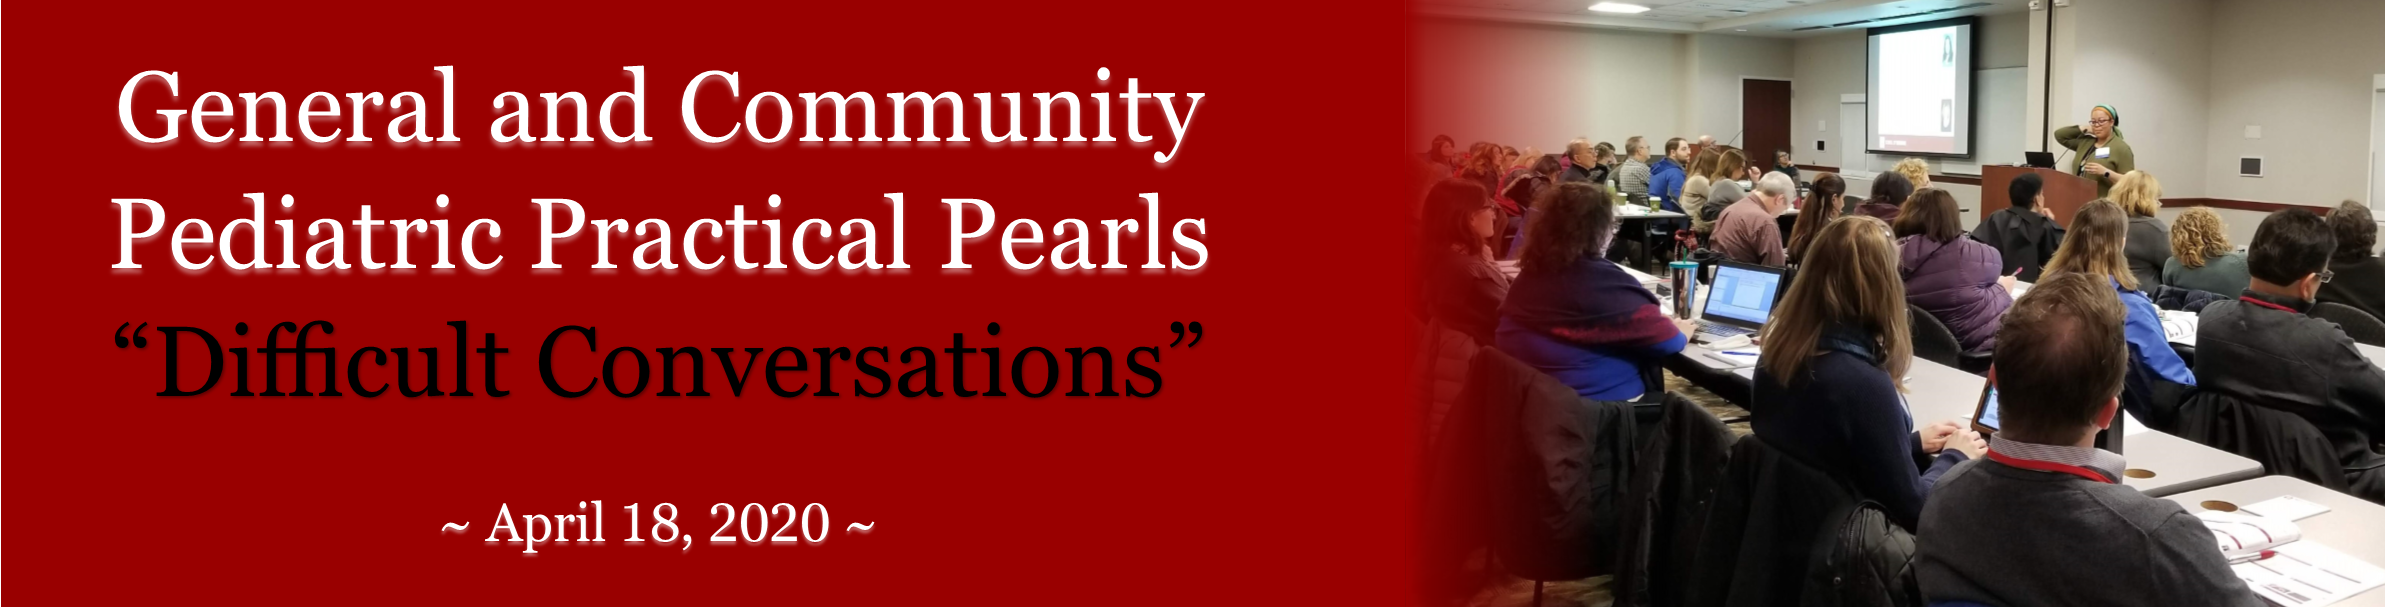 April 2020 Pediatric Practical Pearls: Difficult Conversations Banner